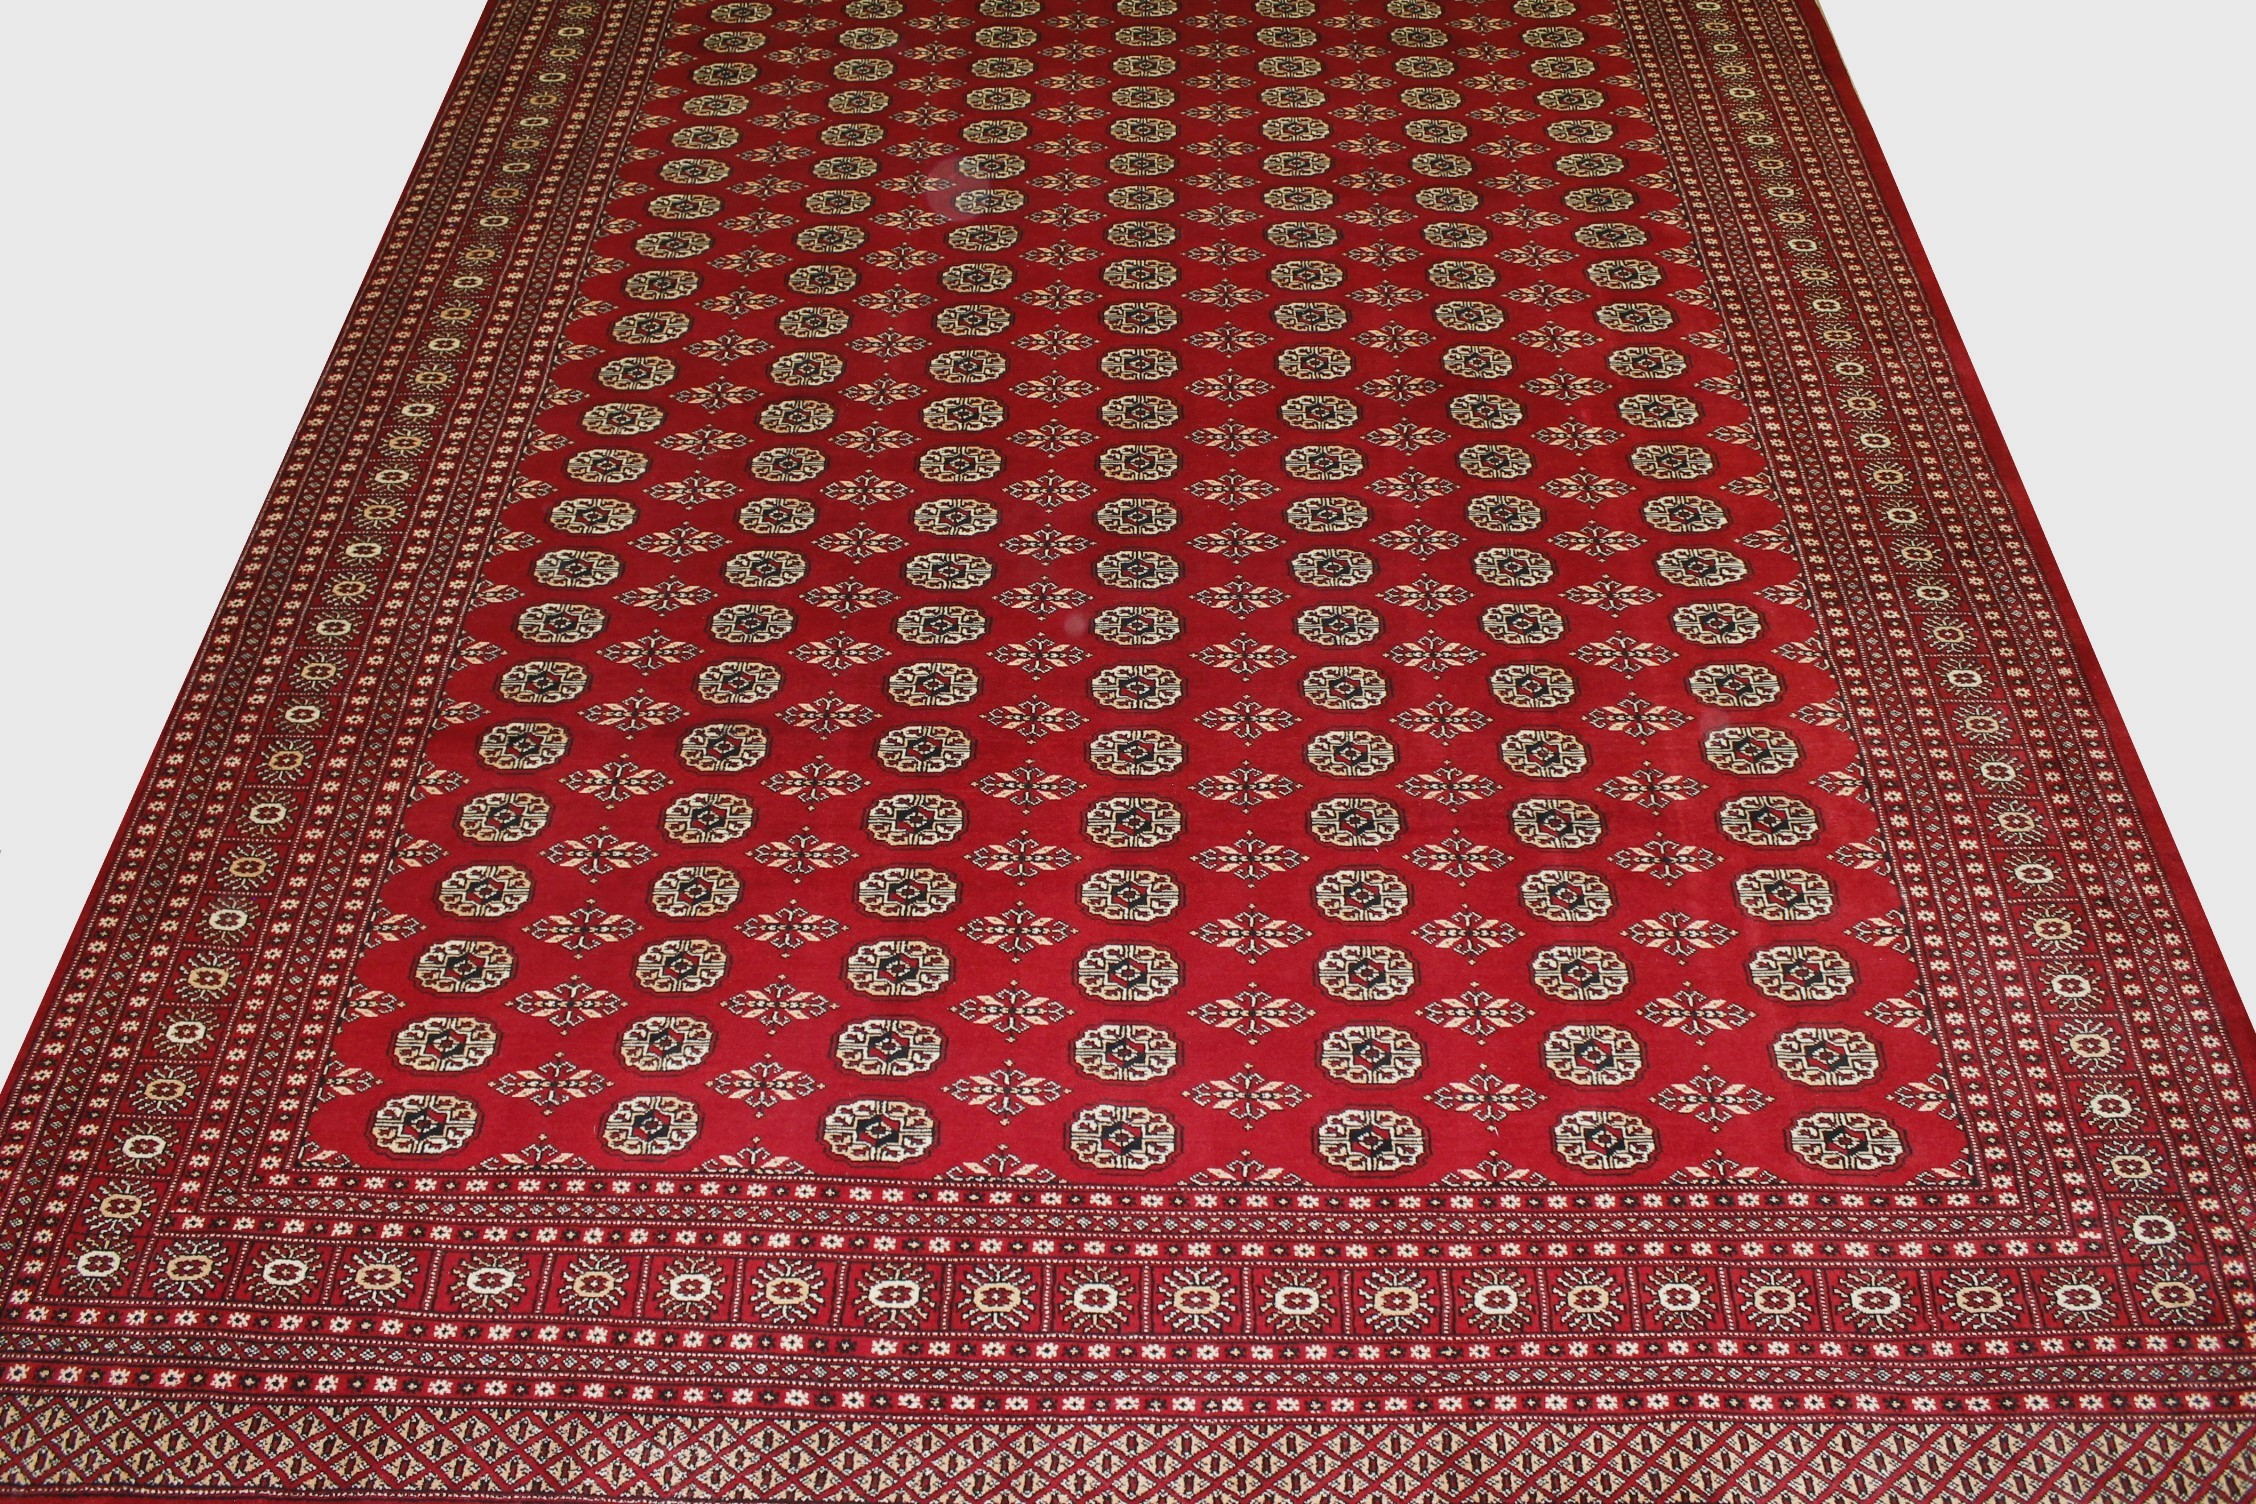 10x14 Bokhara Hand Knotted Wool Area Rug - MR20004